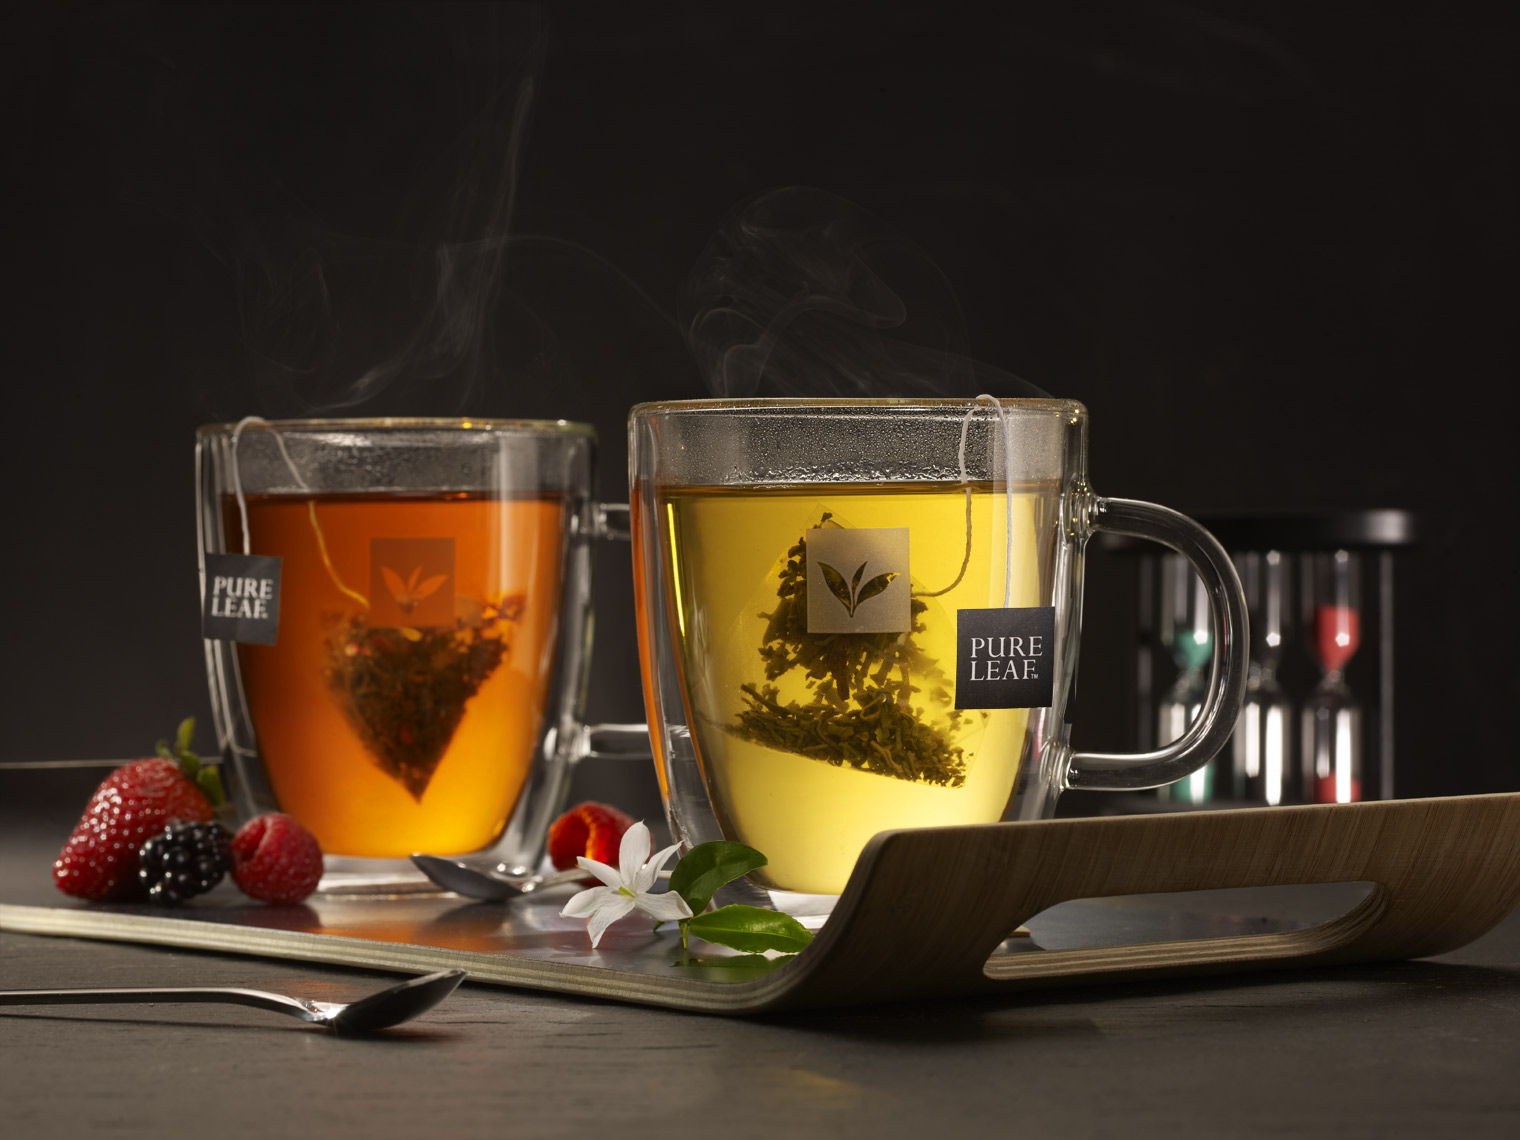 Hot-teas-on-tray